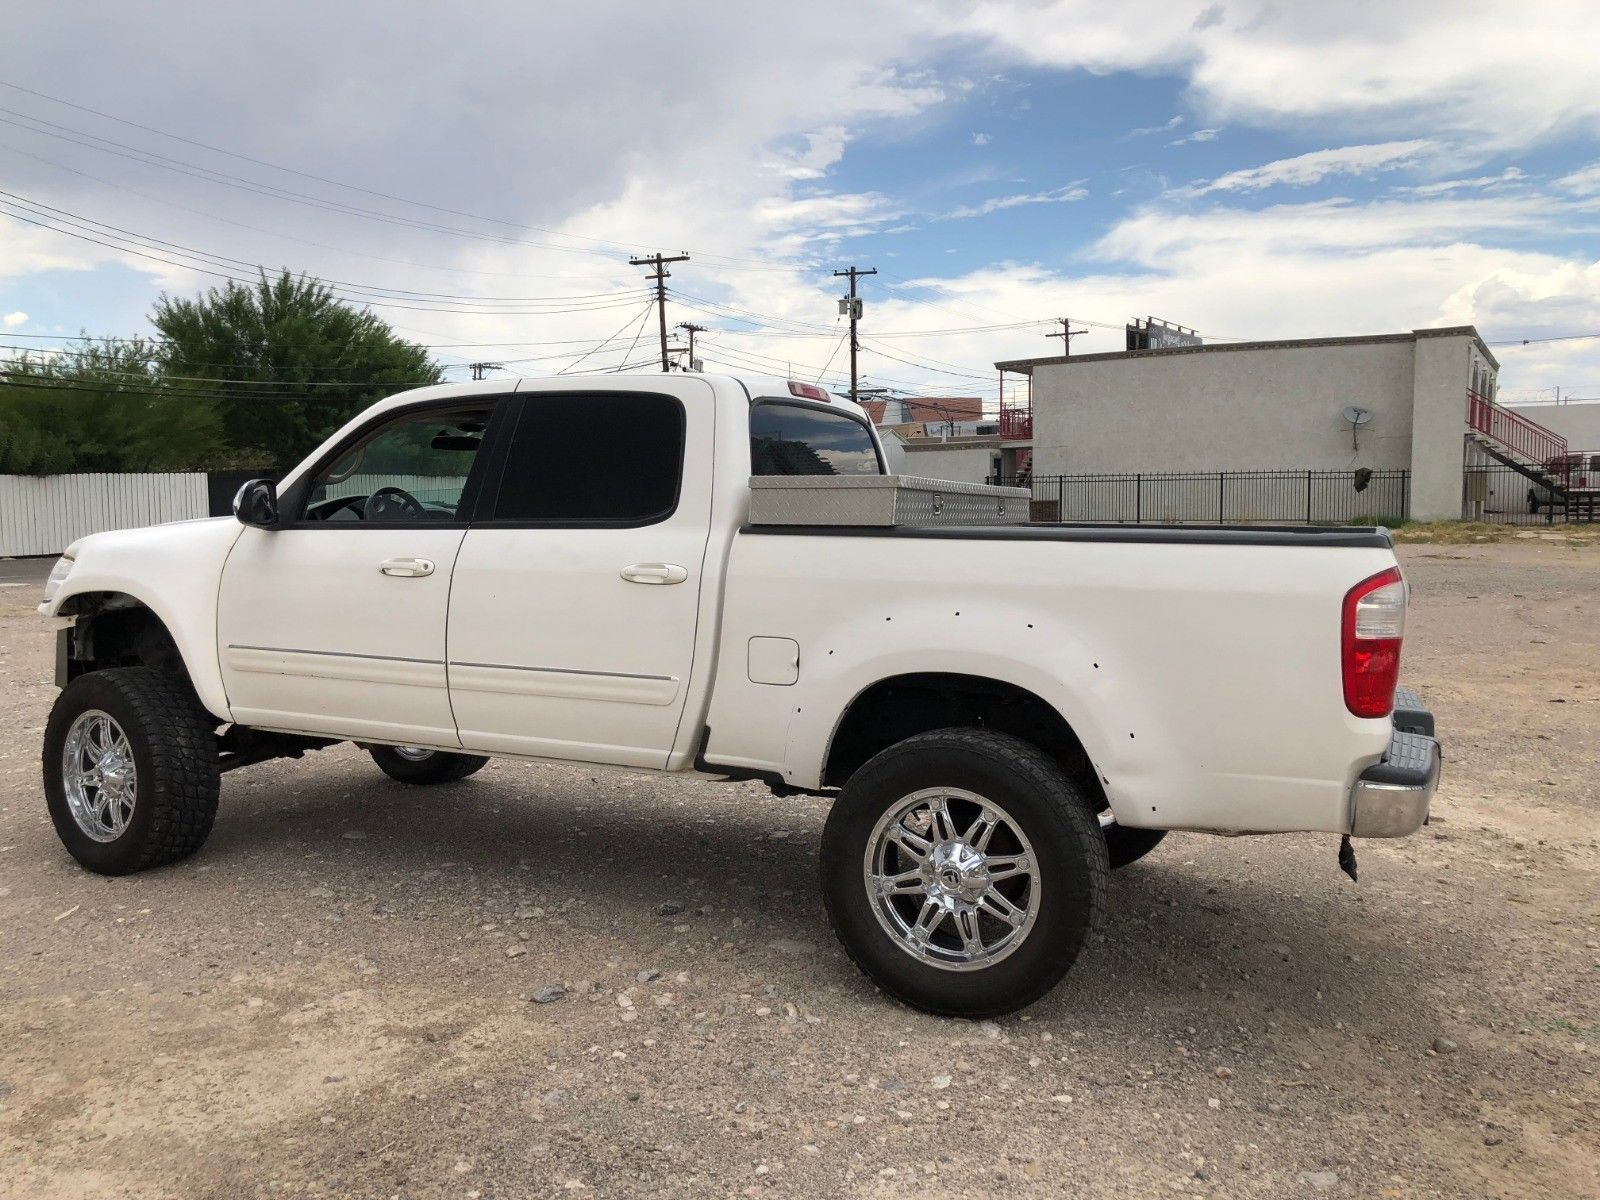 Awesome 2004 Toyota Tundra 4 Door Wheel Drive Truck Lifted Item Specifics